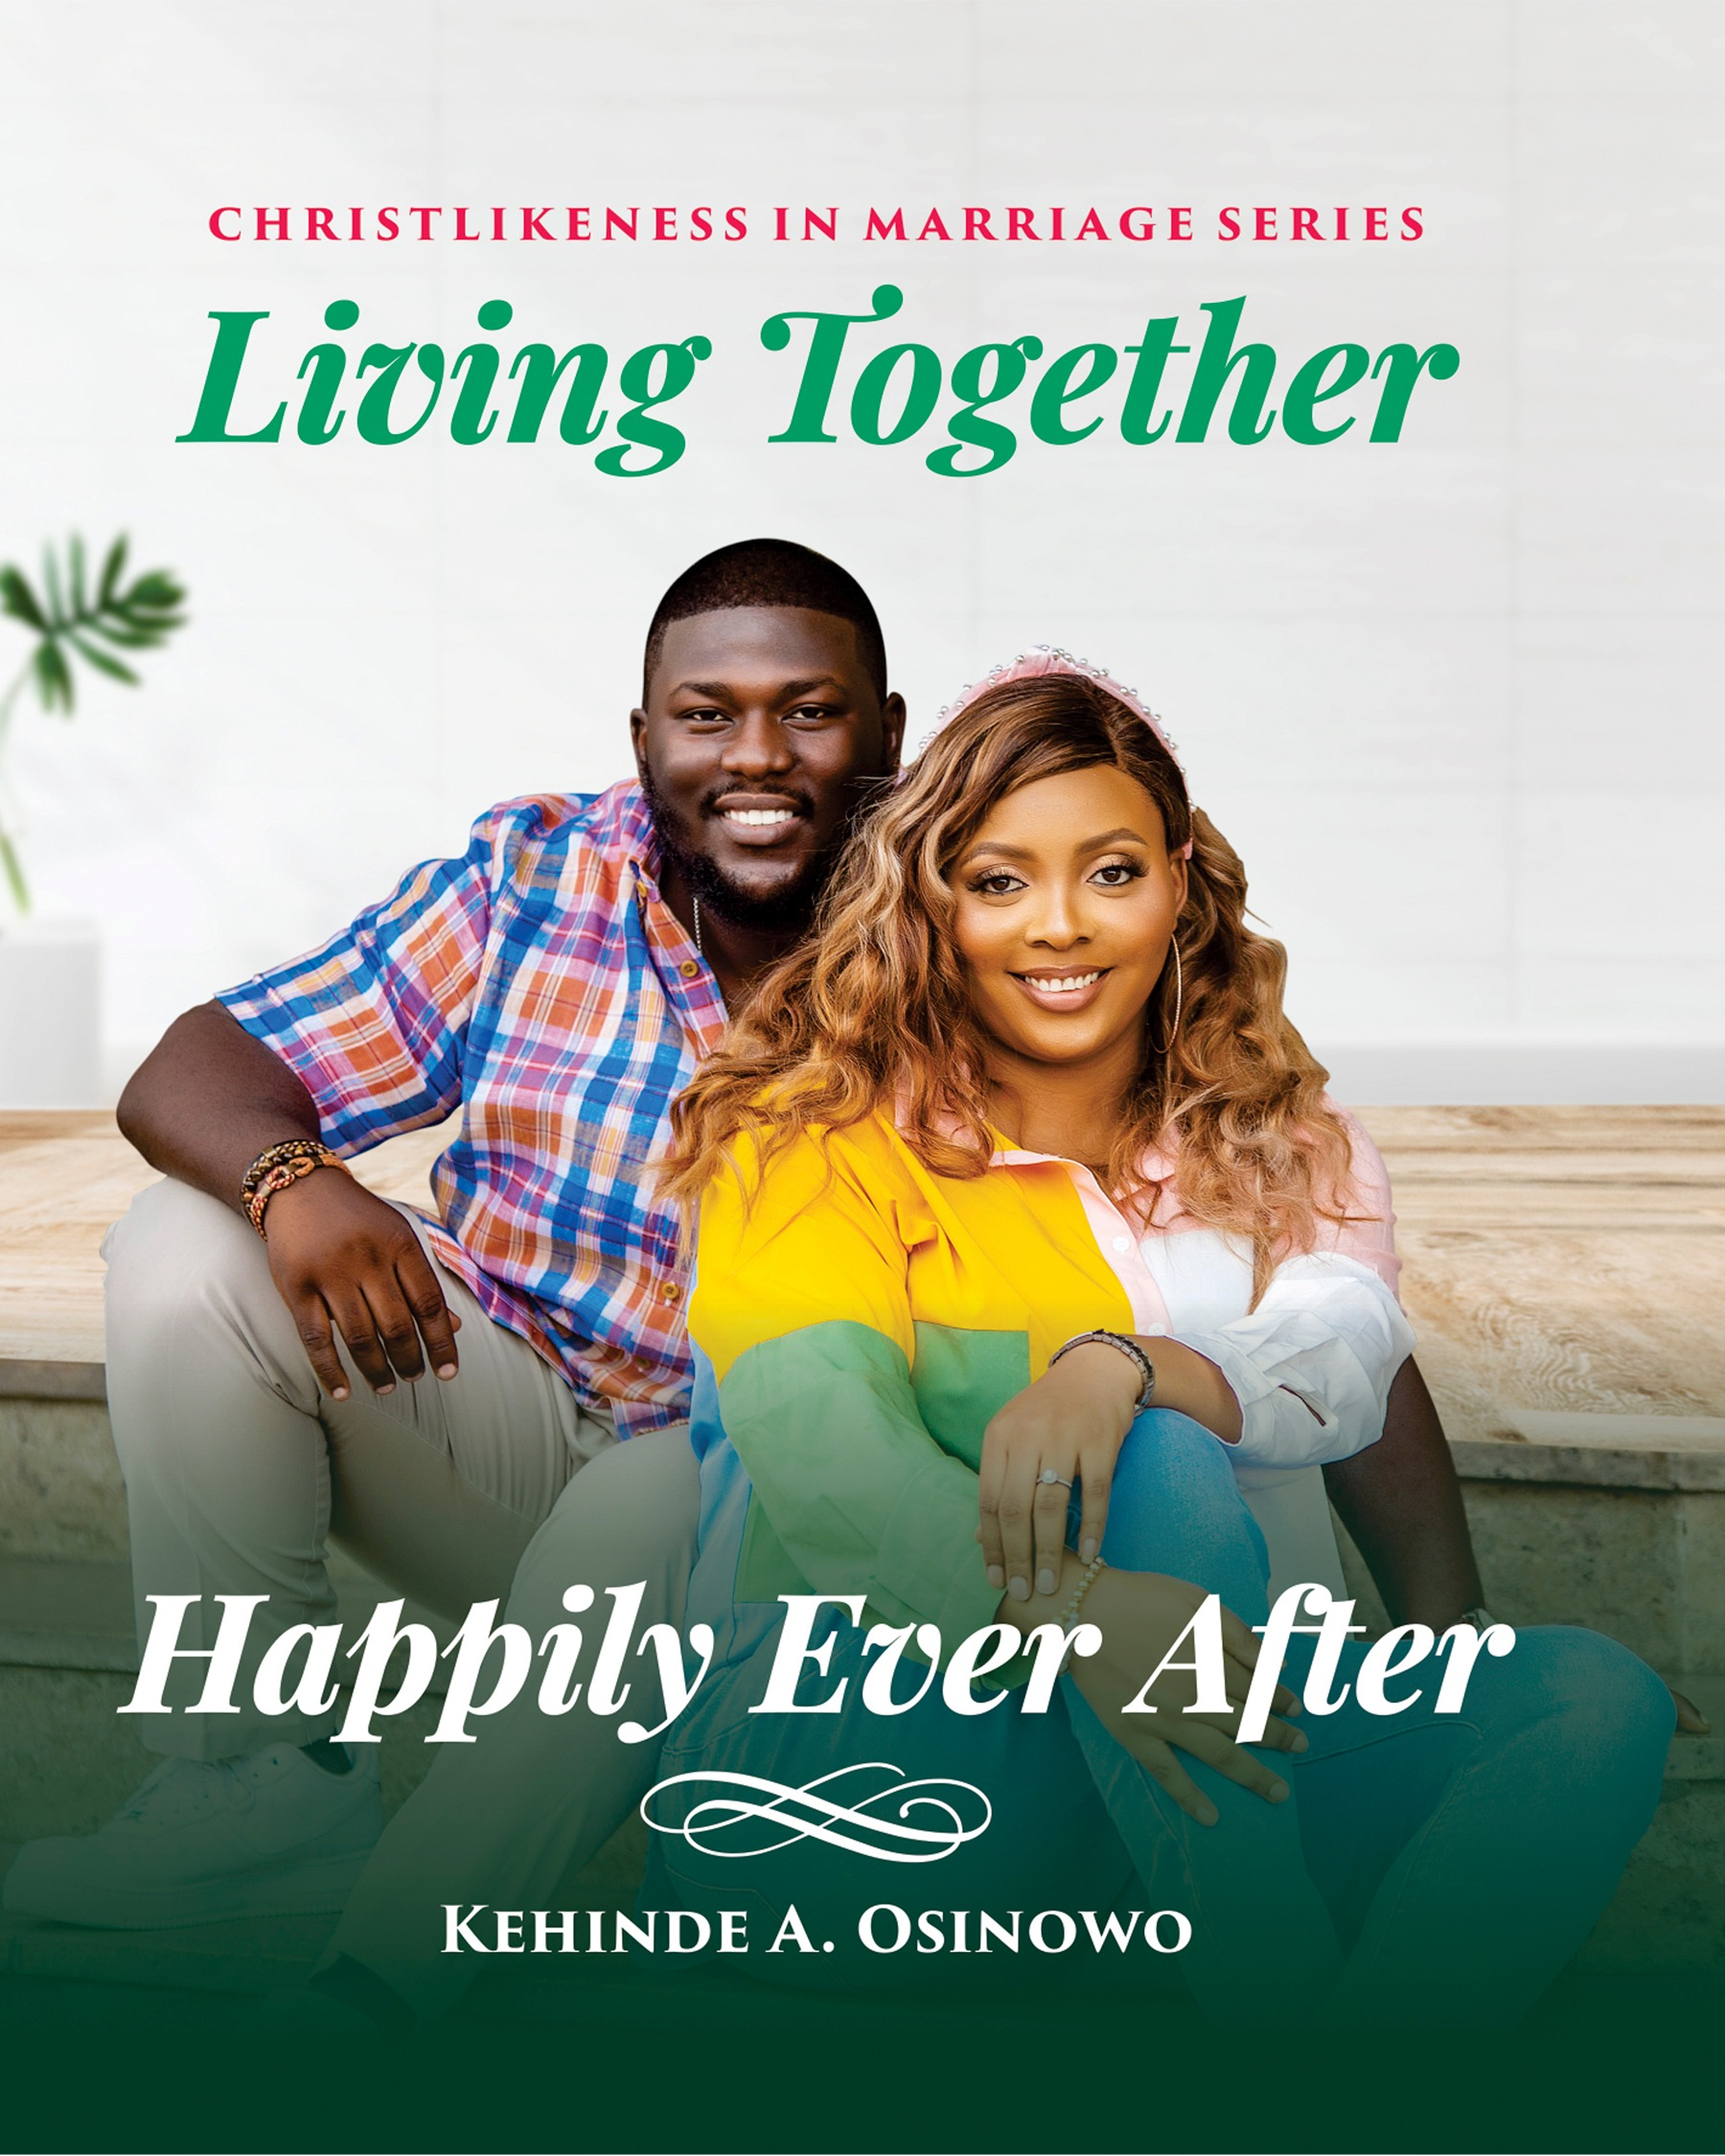 Living Together Happily Ever After